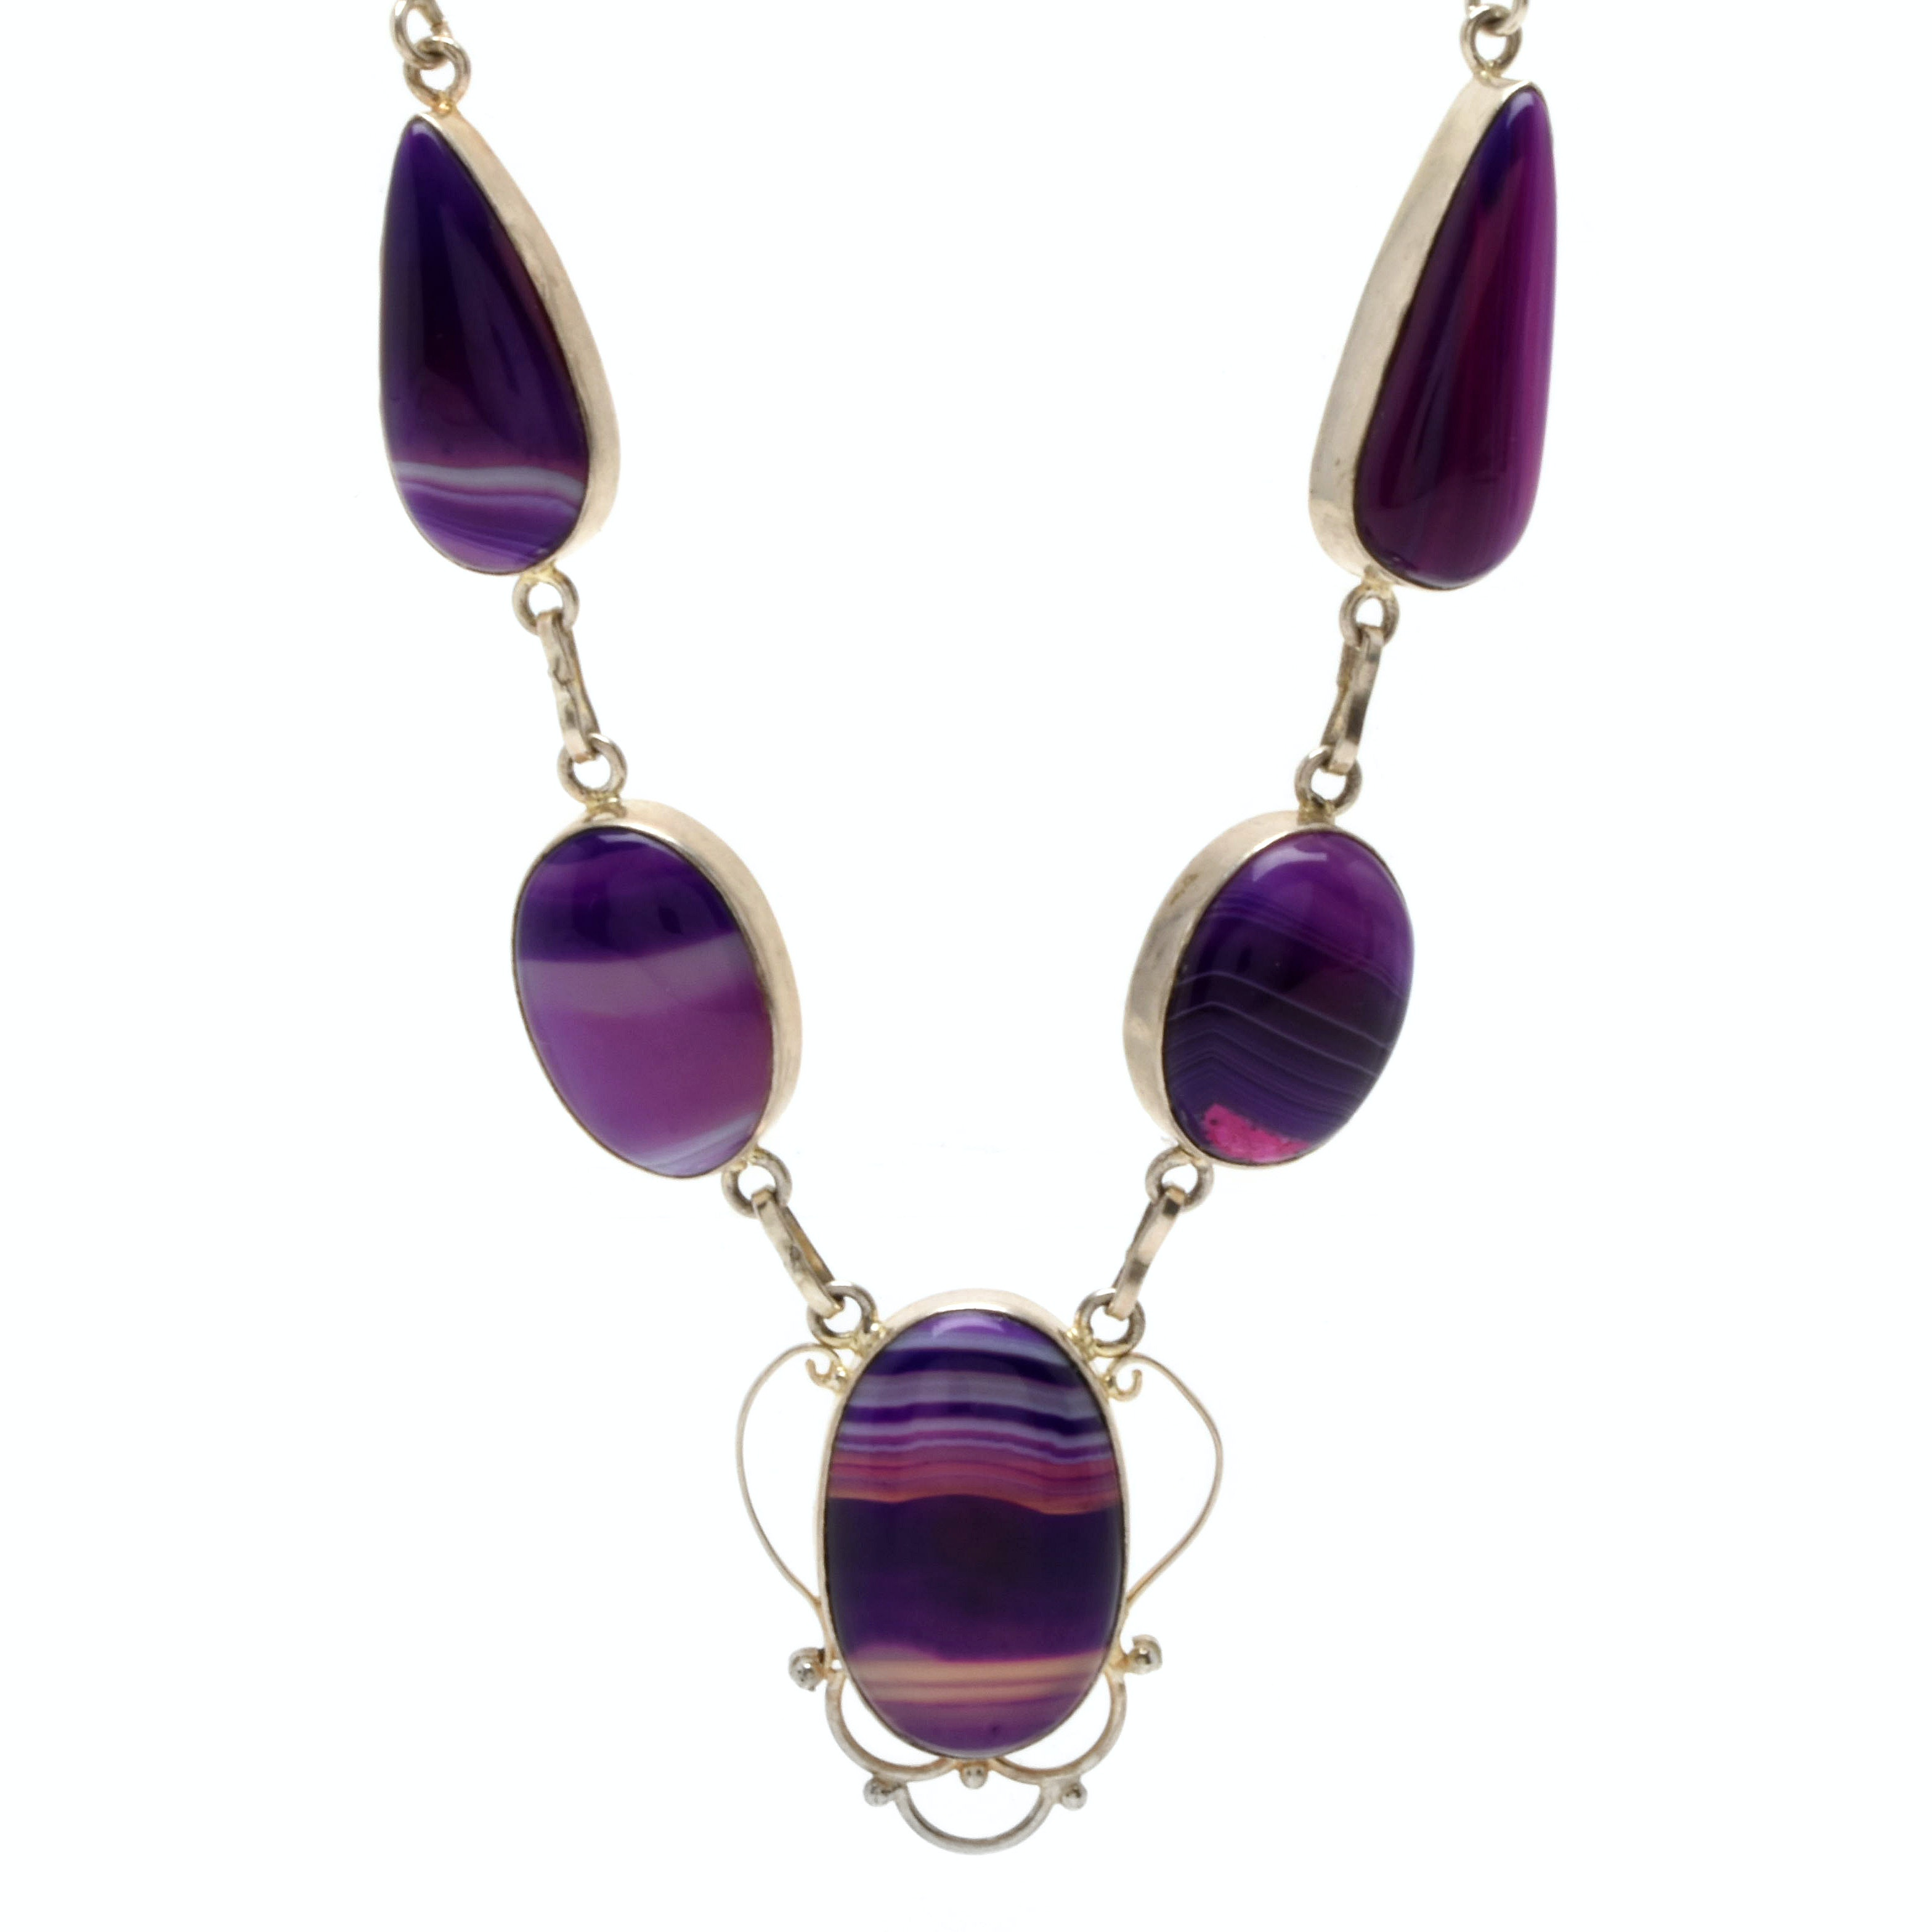 Sterling Silver Purpled Dyed Agate Cabochon Necklace